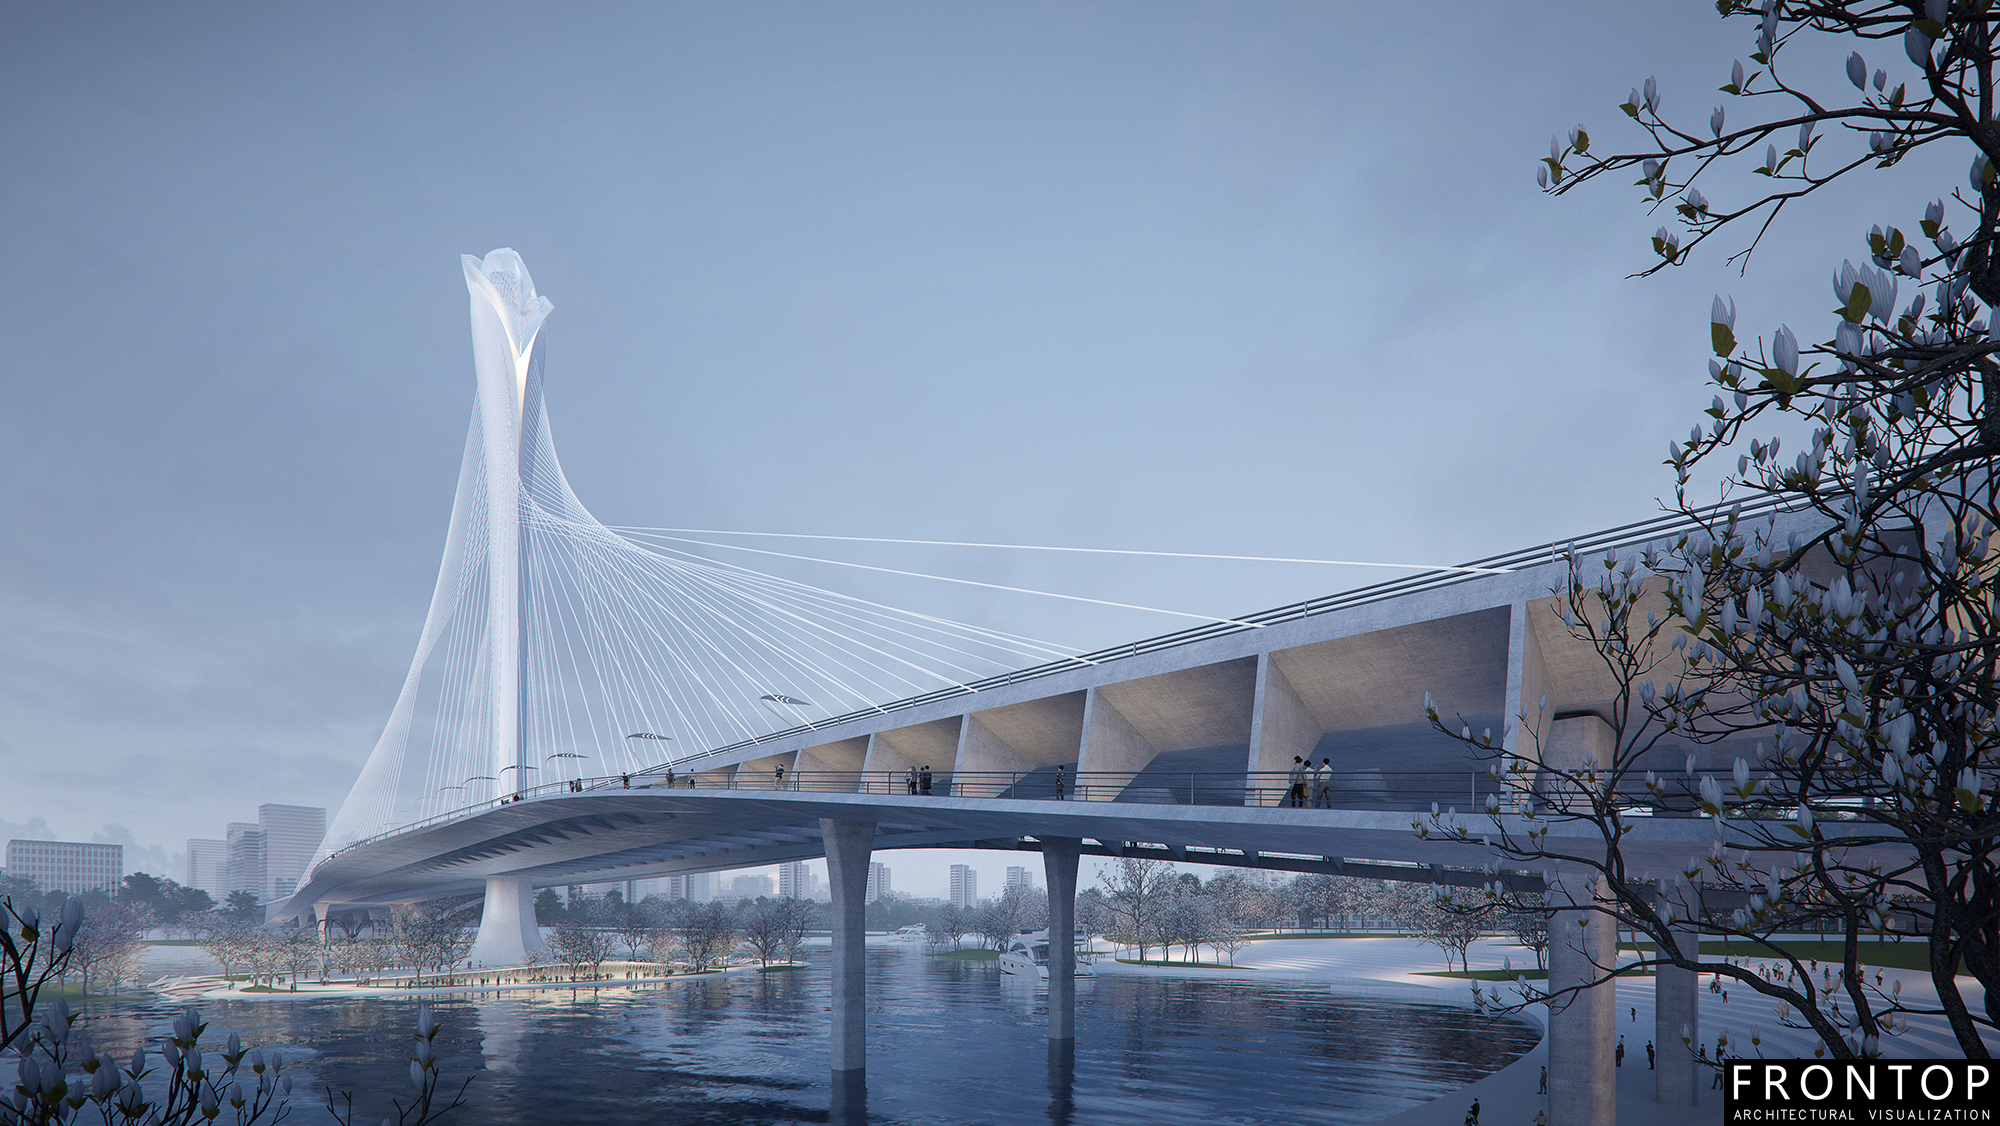 Special Design for Best Architectural Render - Binhai Bay Bridge – Frontop